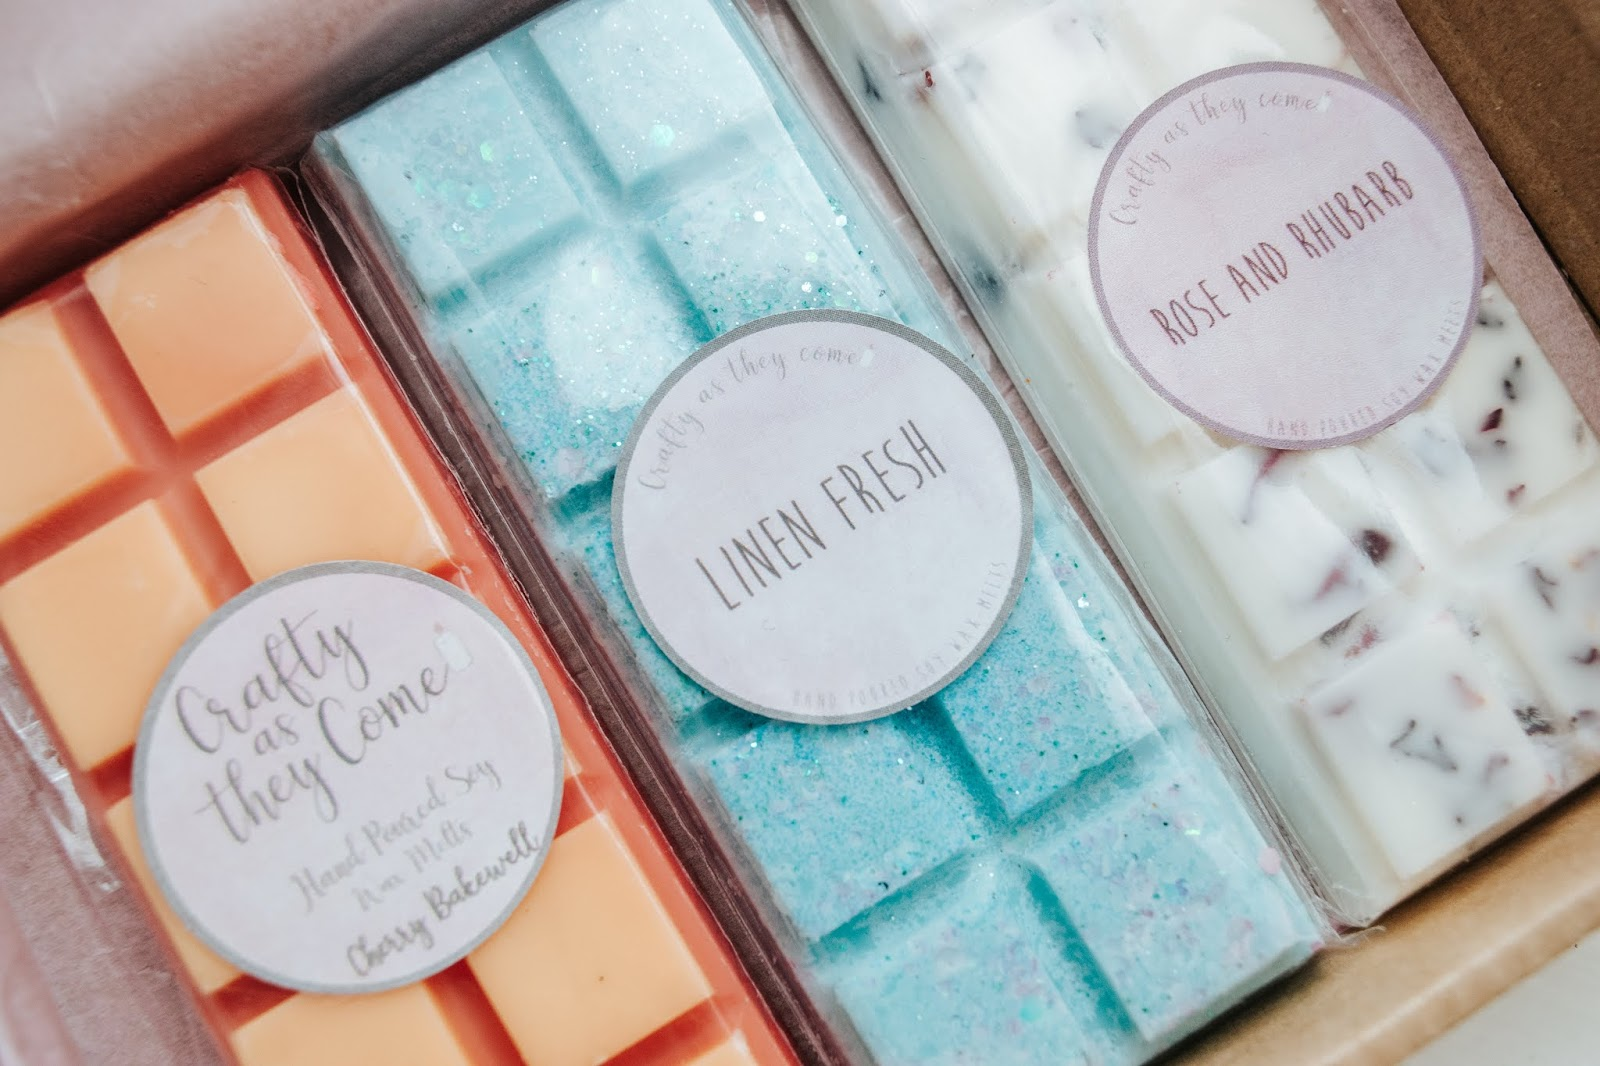 Three wax melts bar in a cardboard box